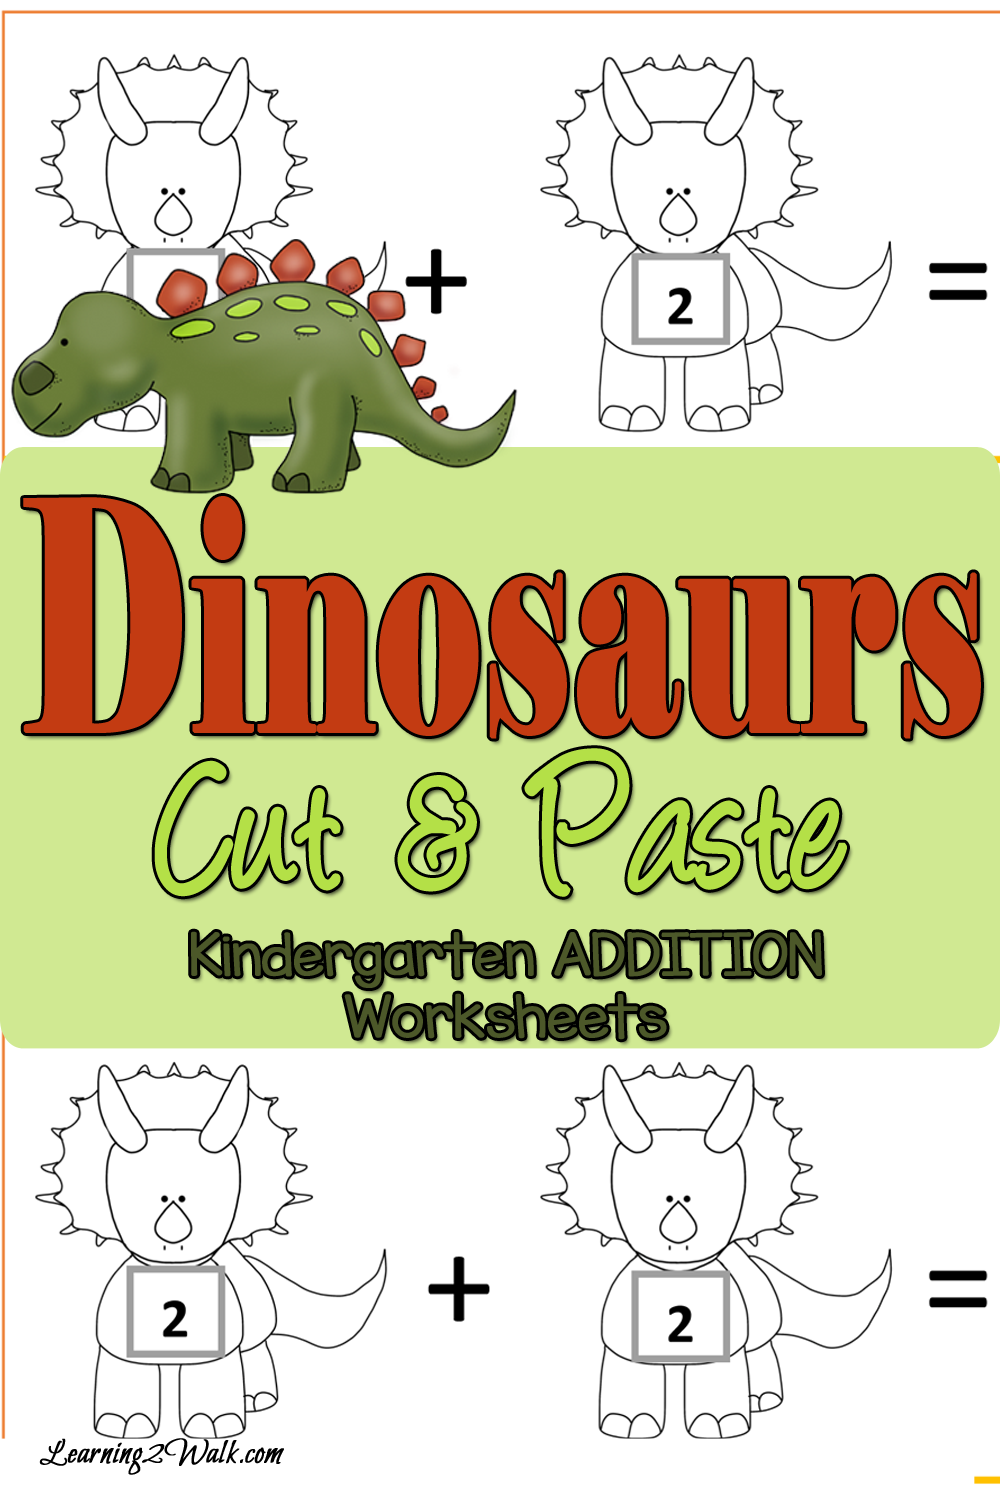 FREE Dinosaurs Cut and Paste Addition Worksheets – Cut and Paste Addition Worksheets